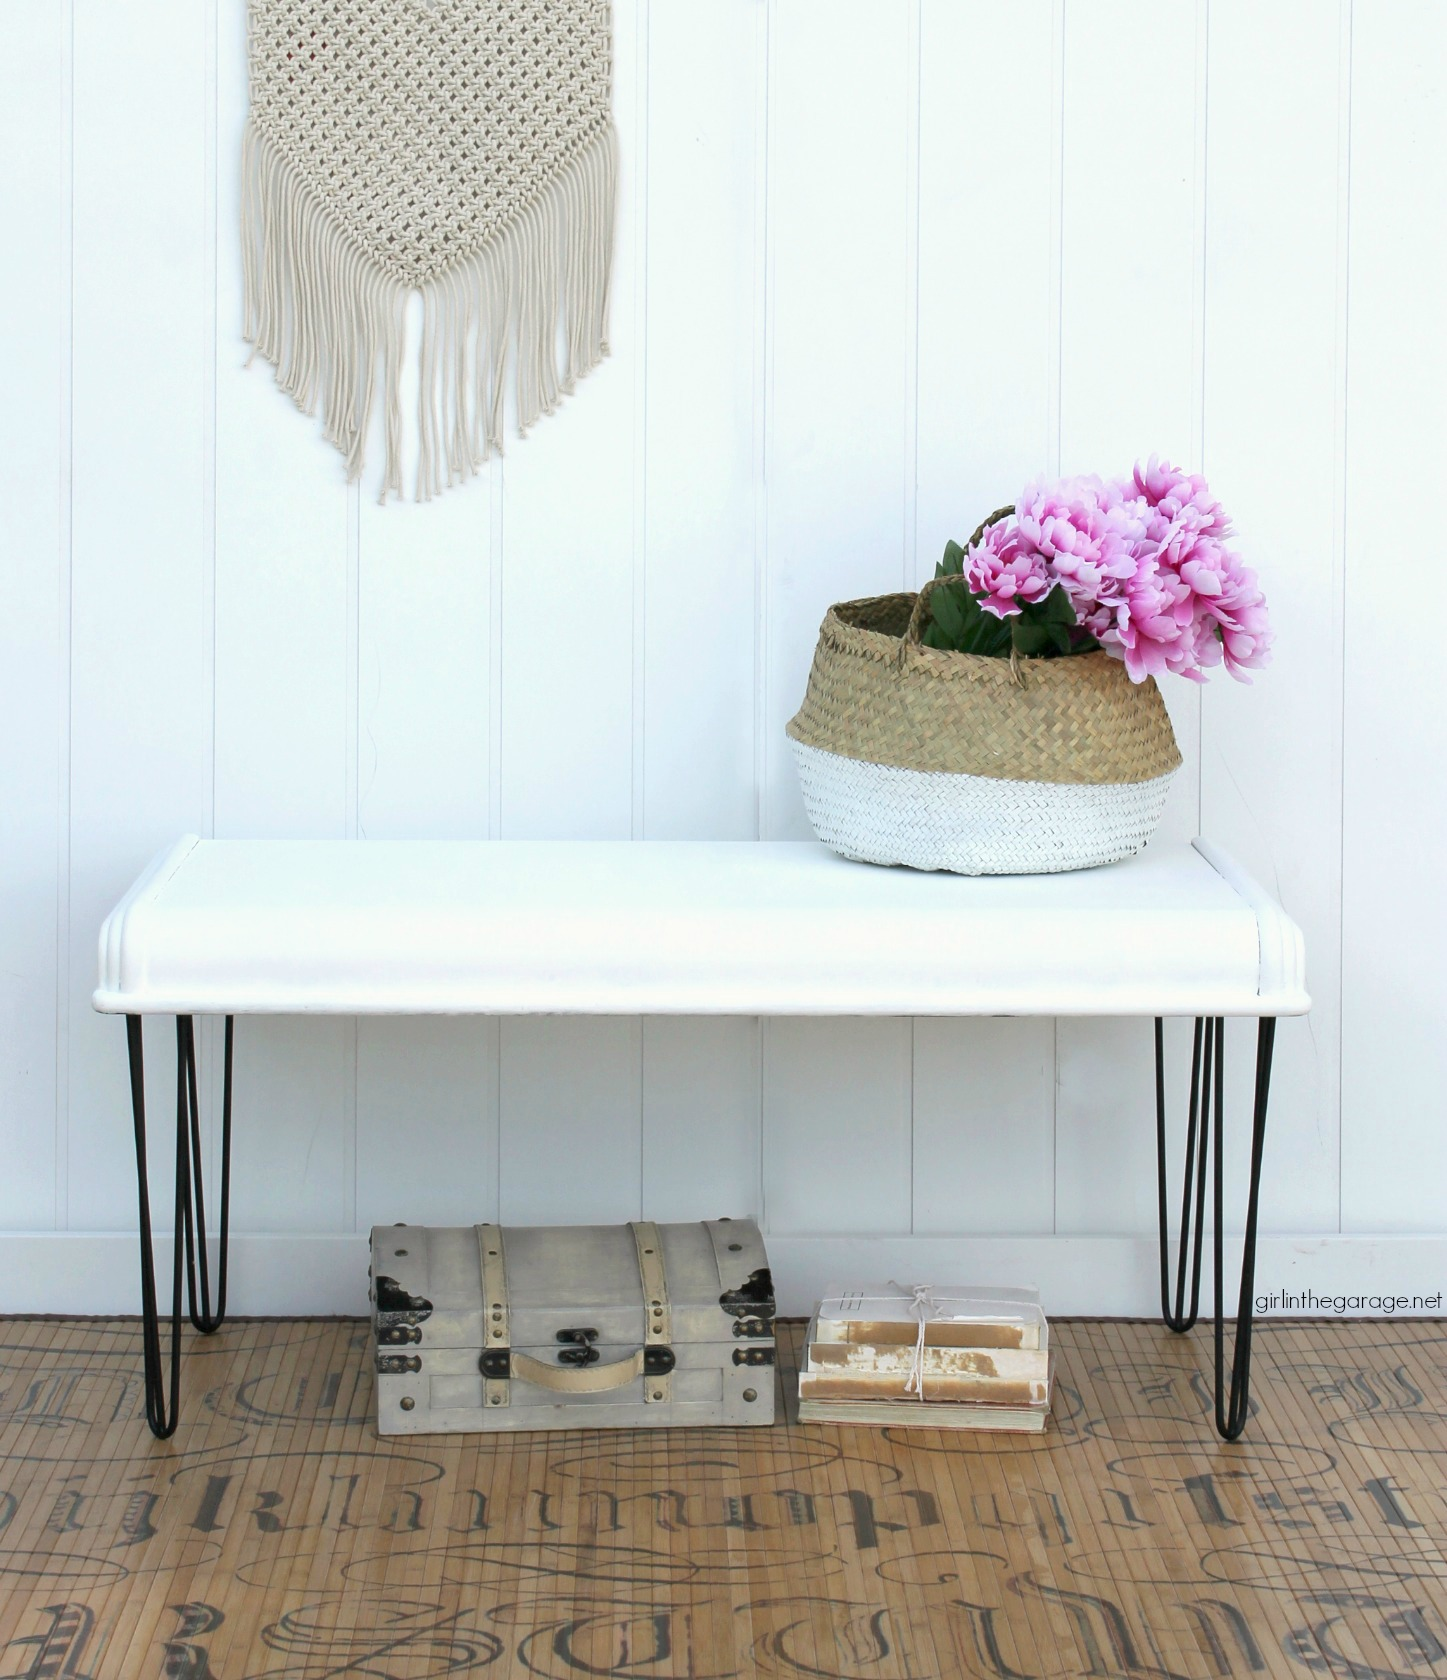 Repurposed chest lid to DIY modern farmhouse bench - Girl in the Garage